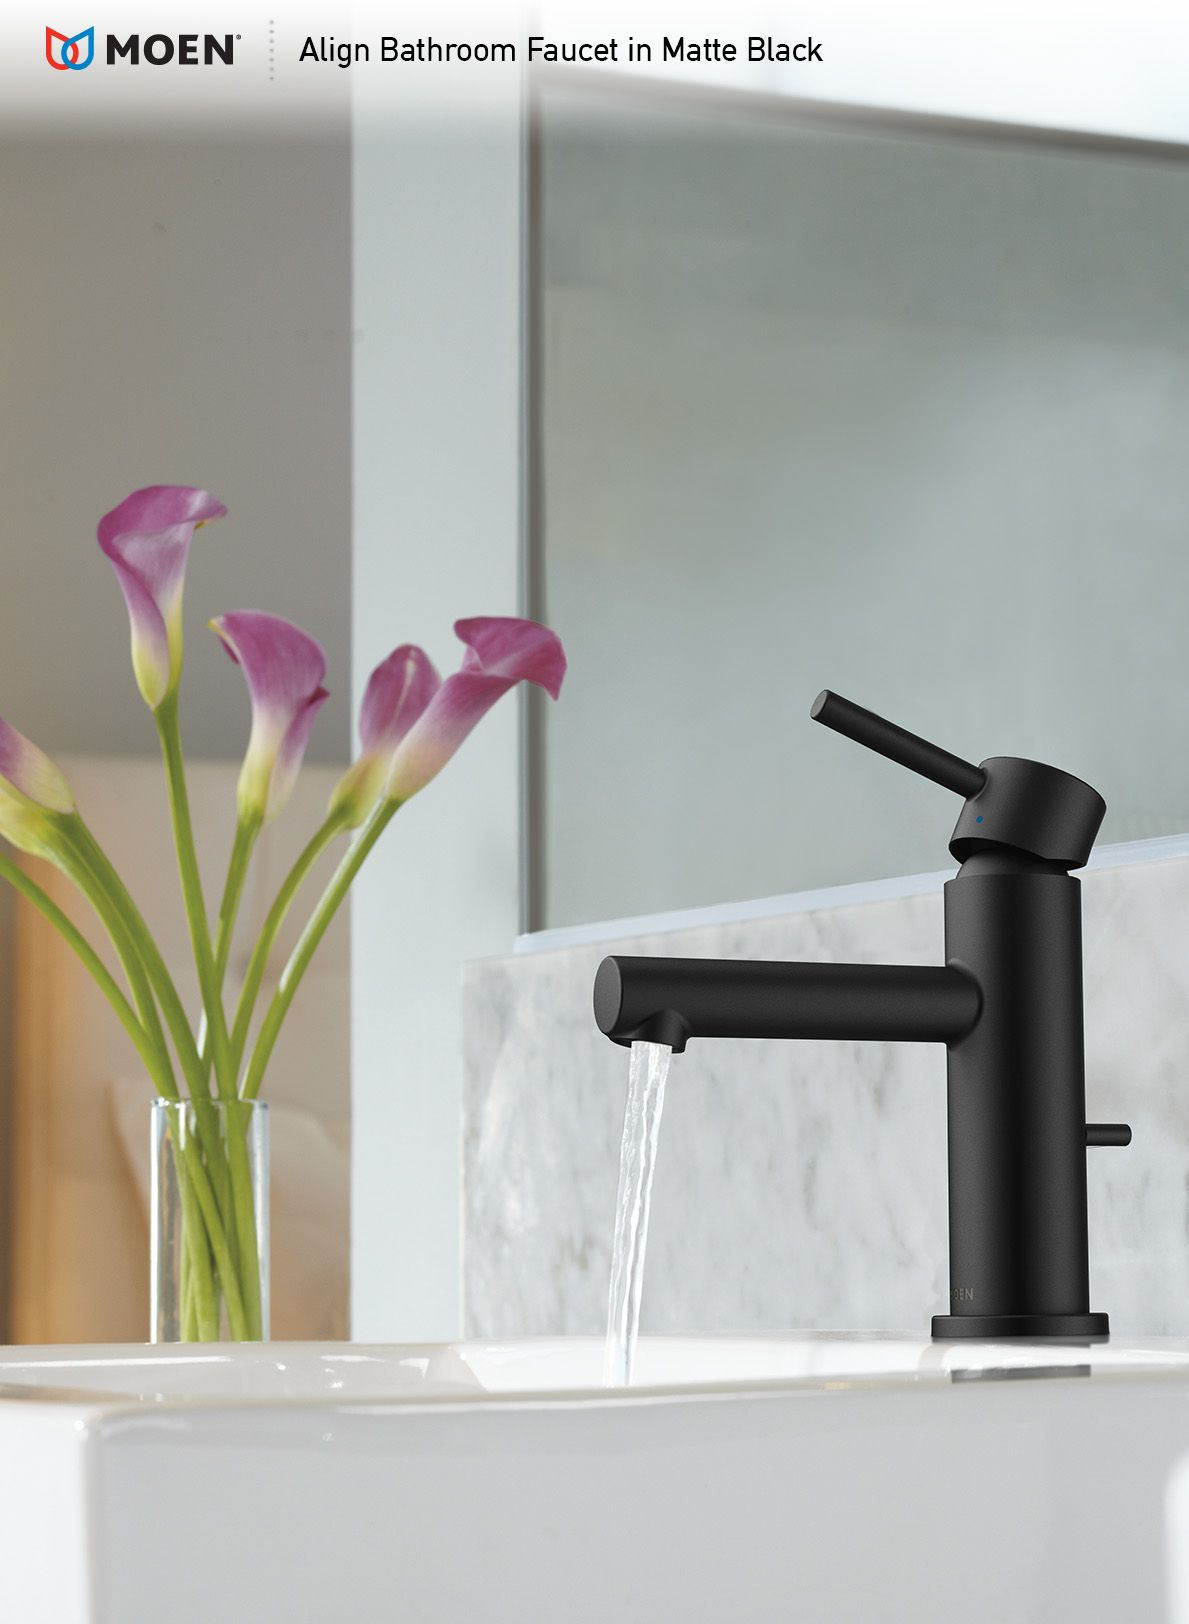 Moen Genta Chrome 1 Handle Bathroom Faucet: Add Some Contrast And Simplify Your Bathroom's Look With